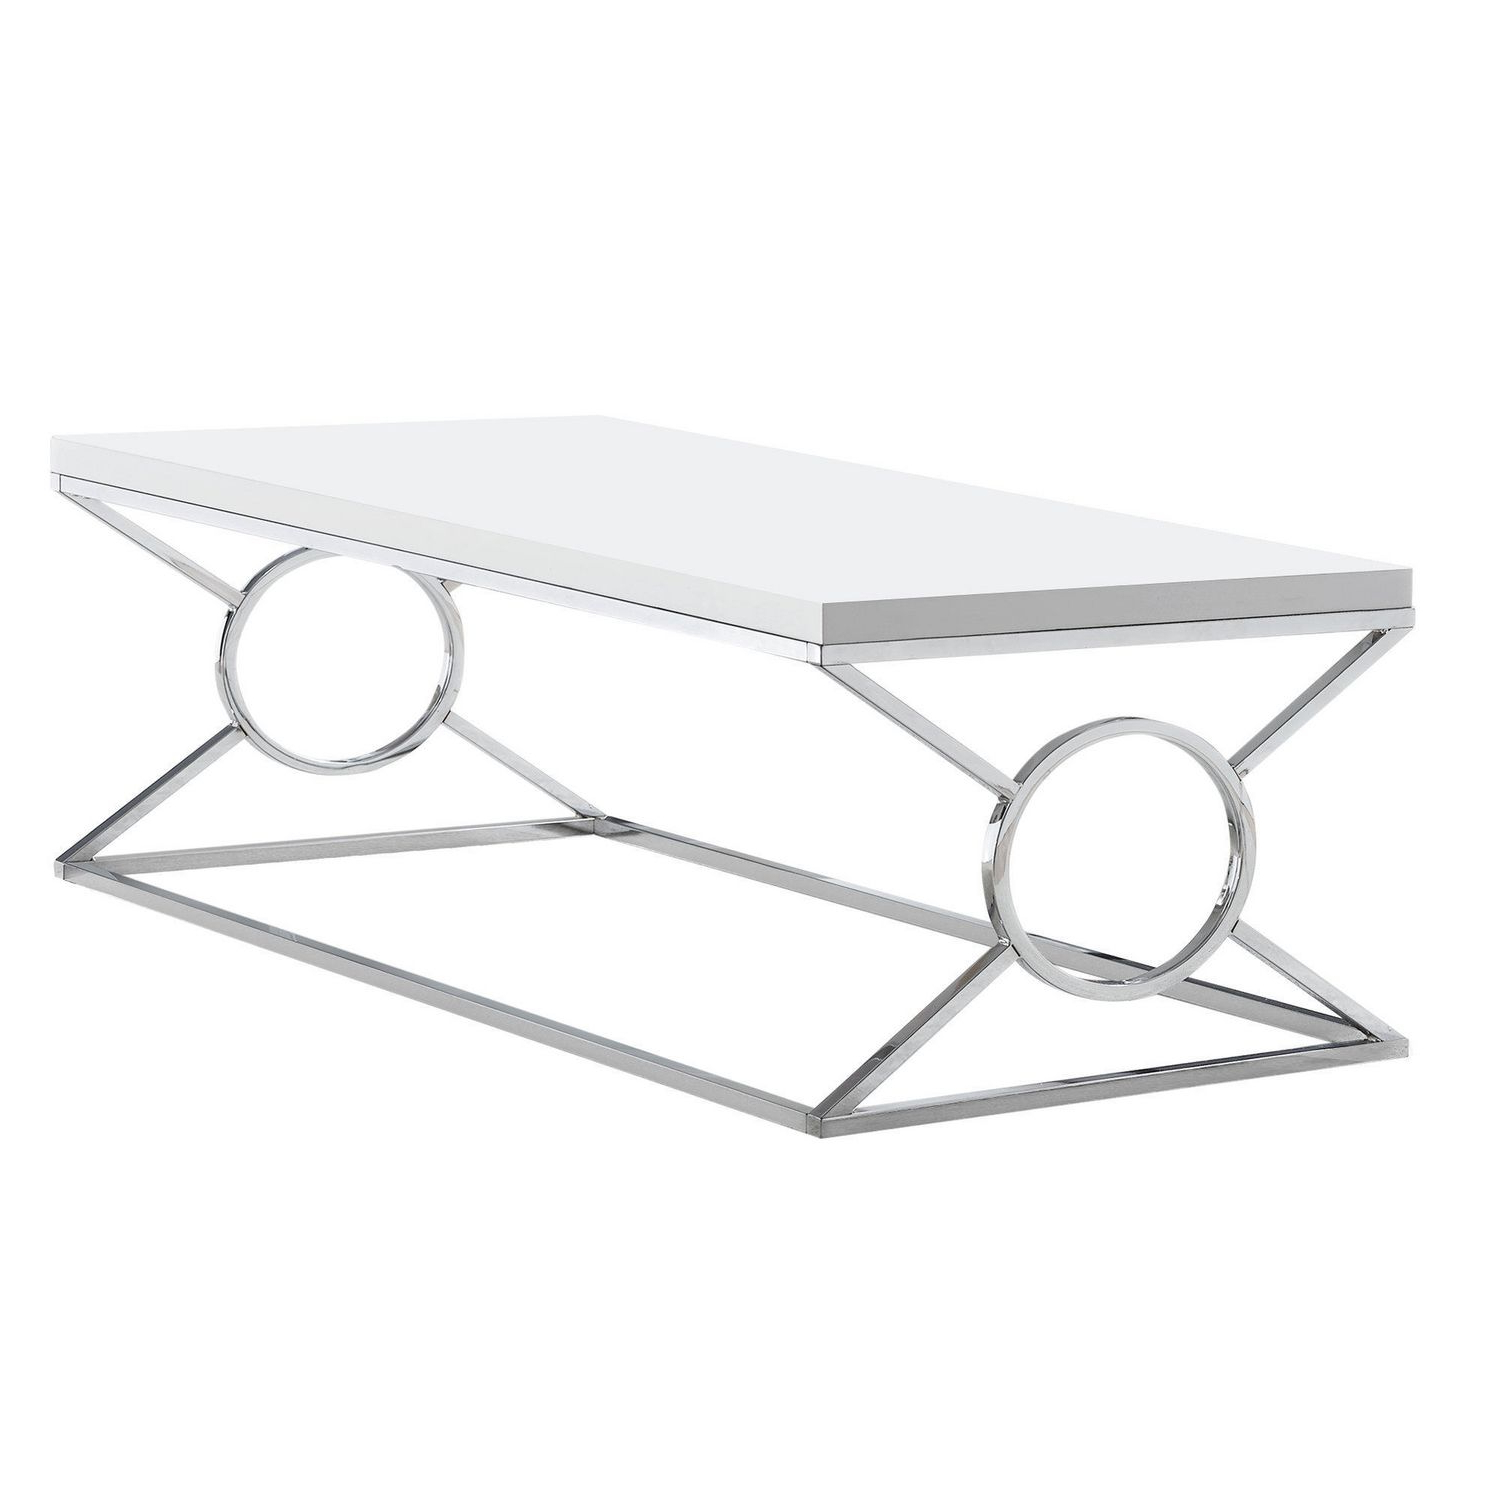 Most Popular Glossy White Hollow Core Tempered Glass Cocktail Tables With Regard To Monarch Specialties Inc Monarch Specialties Coffee Table (View 20 of 20)